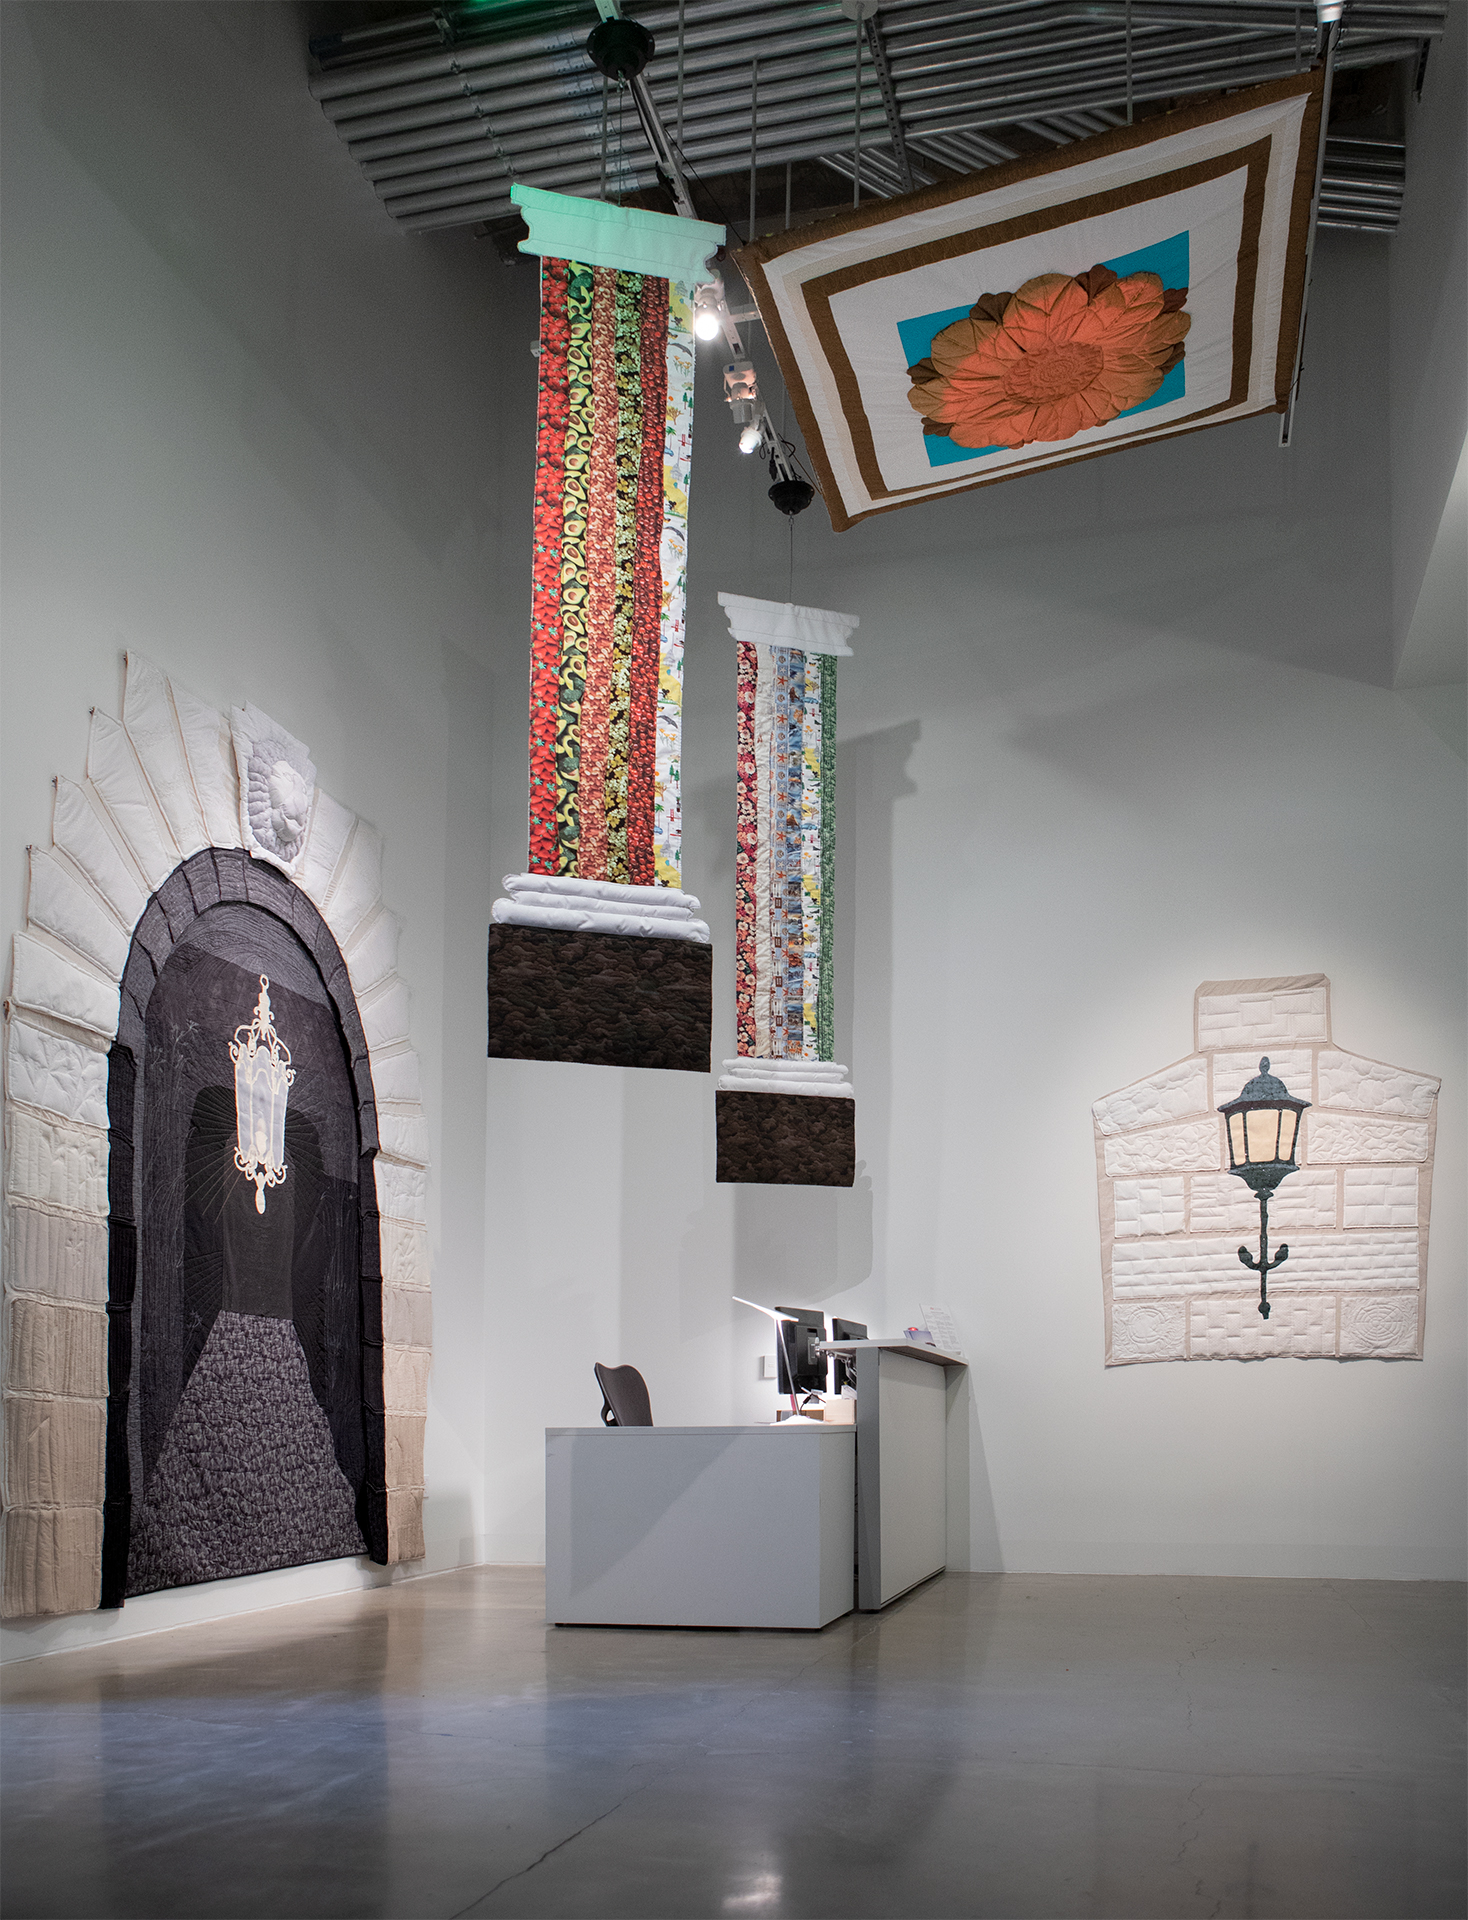 Installation view of Mik Gaspay, May Gaspay and Lleva Abenes' installation 'Fiber Structure,' at the SFAC Gallery.